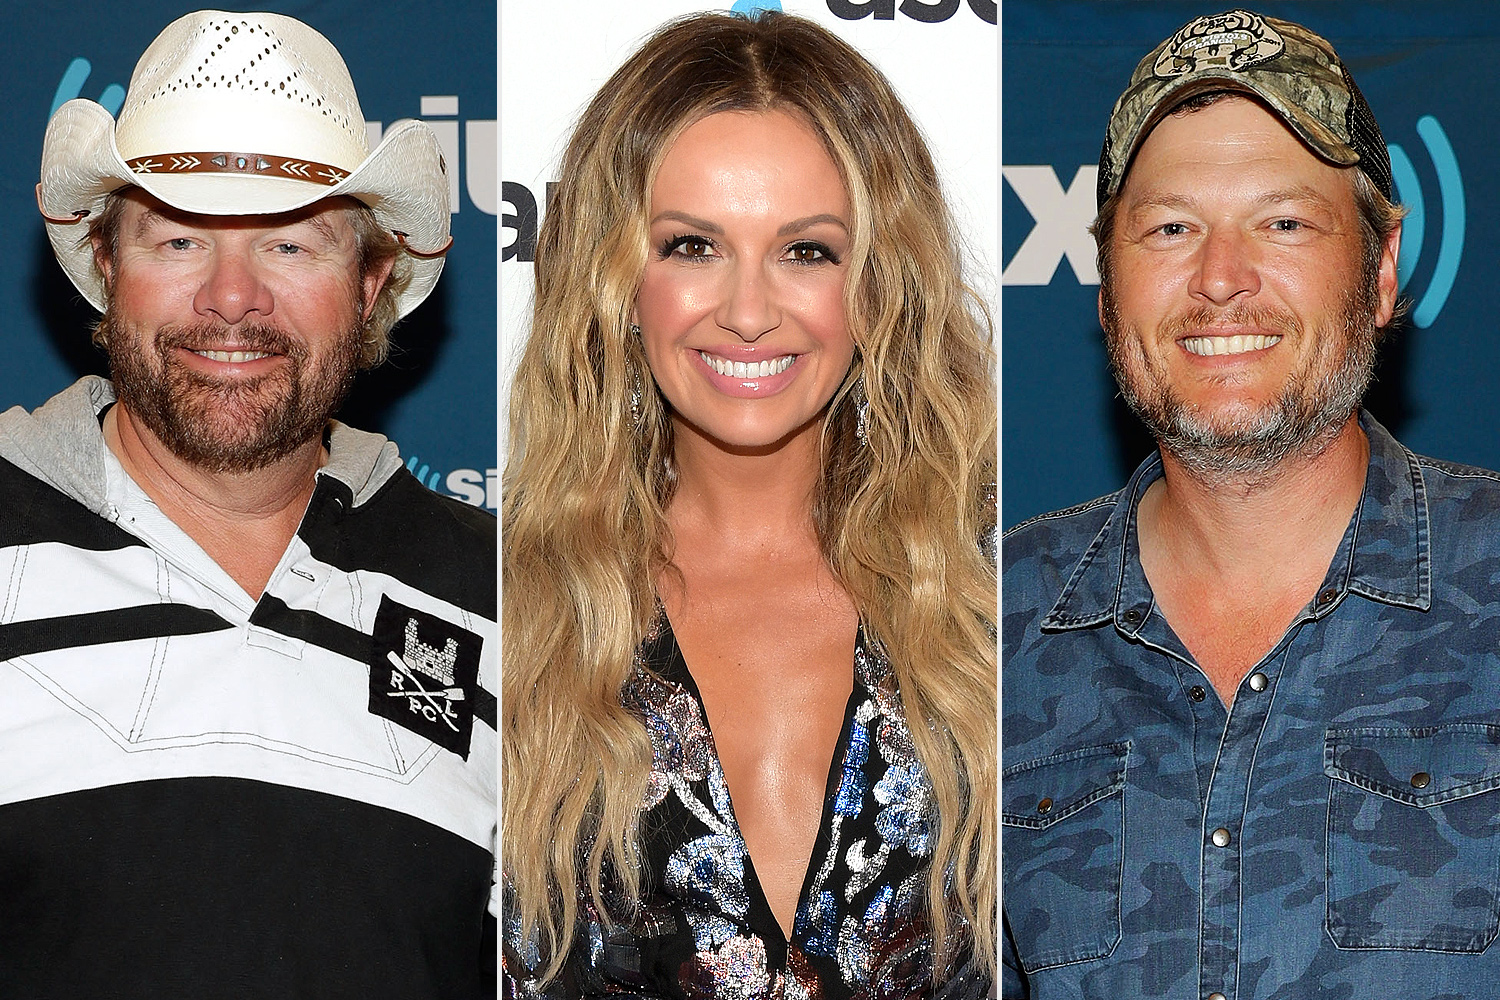 Blake Shelton, Toby Keith and Carly Pearce